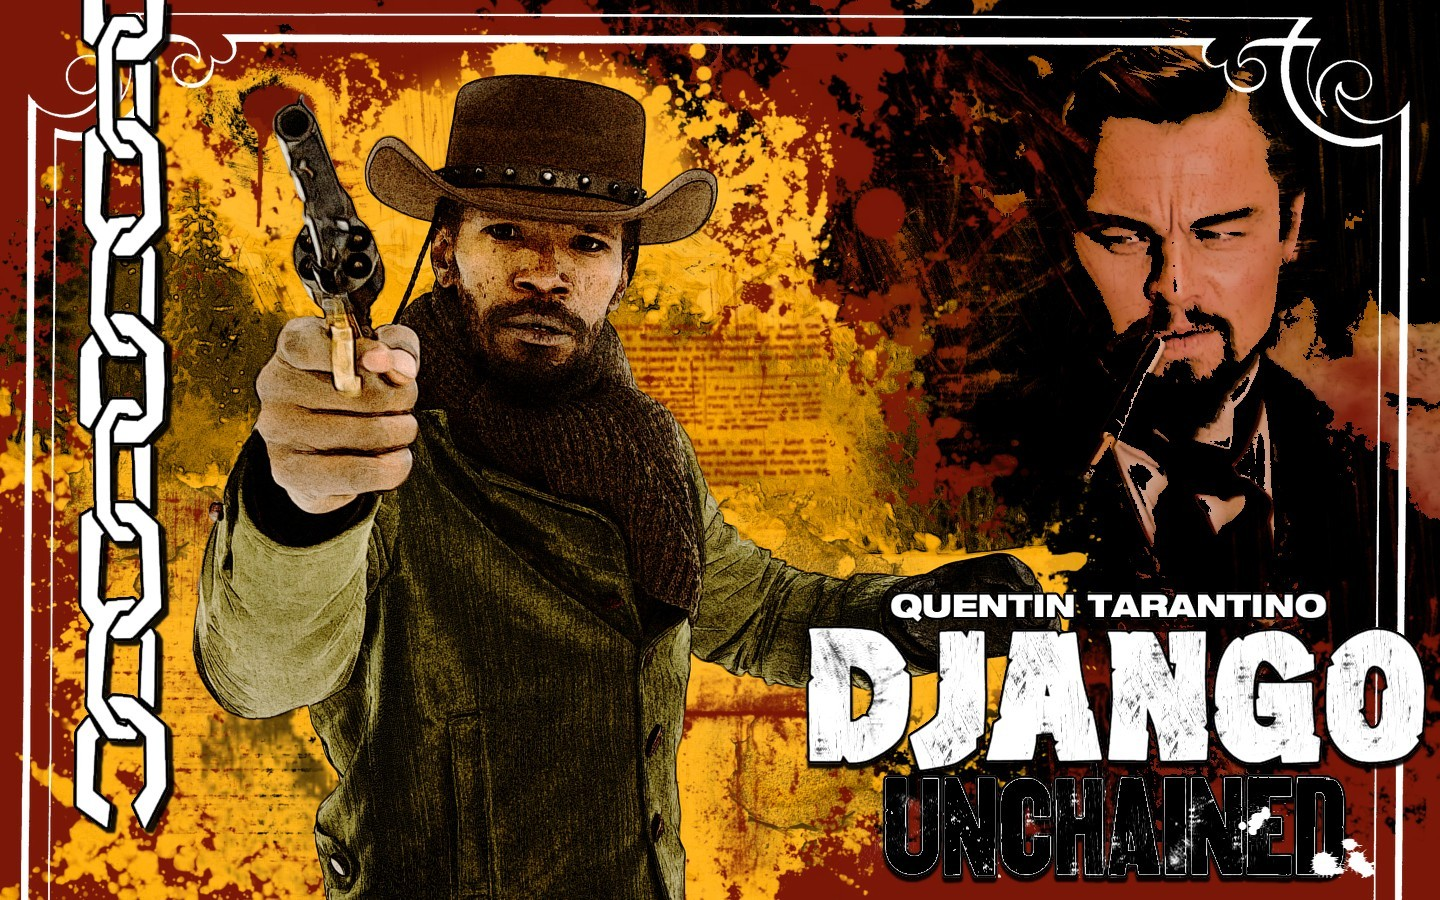 the issue of slavery in the movies lincoln and django unchained Samuel l jackson addresses the issue of slavery in the context of director quentin tarantino's spaghetti western, django unchained.